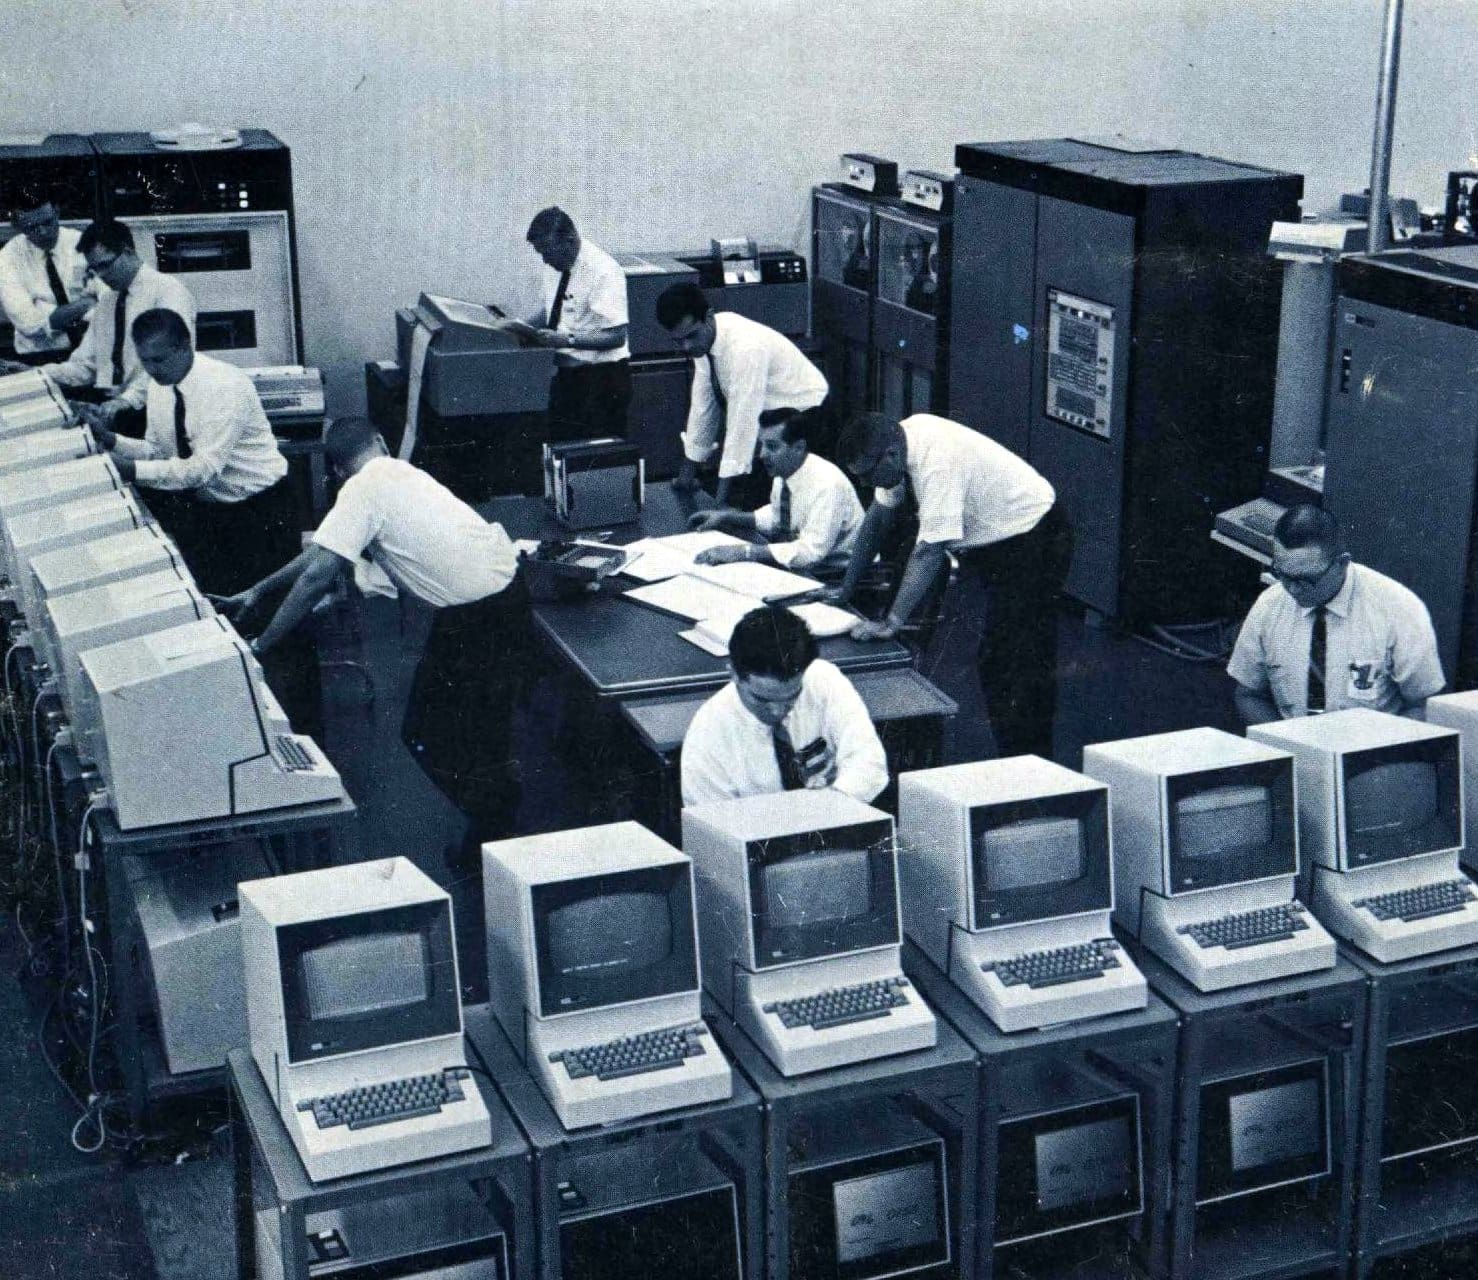 Computers in 1966